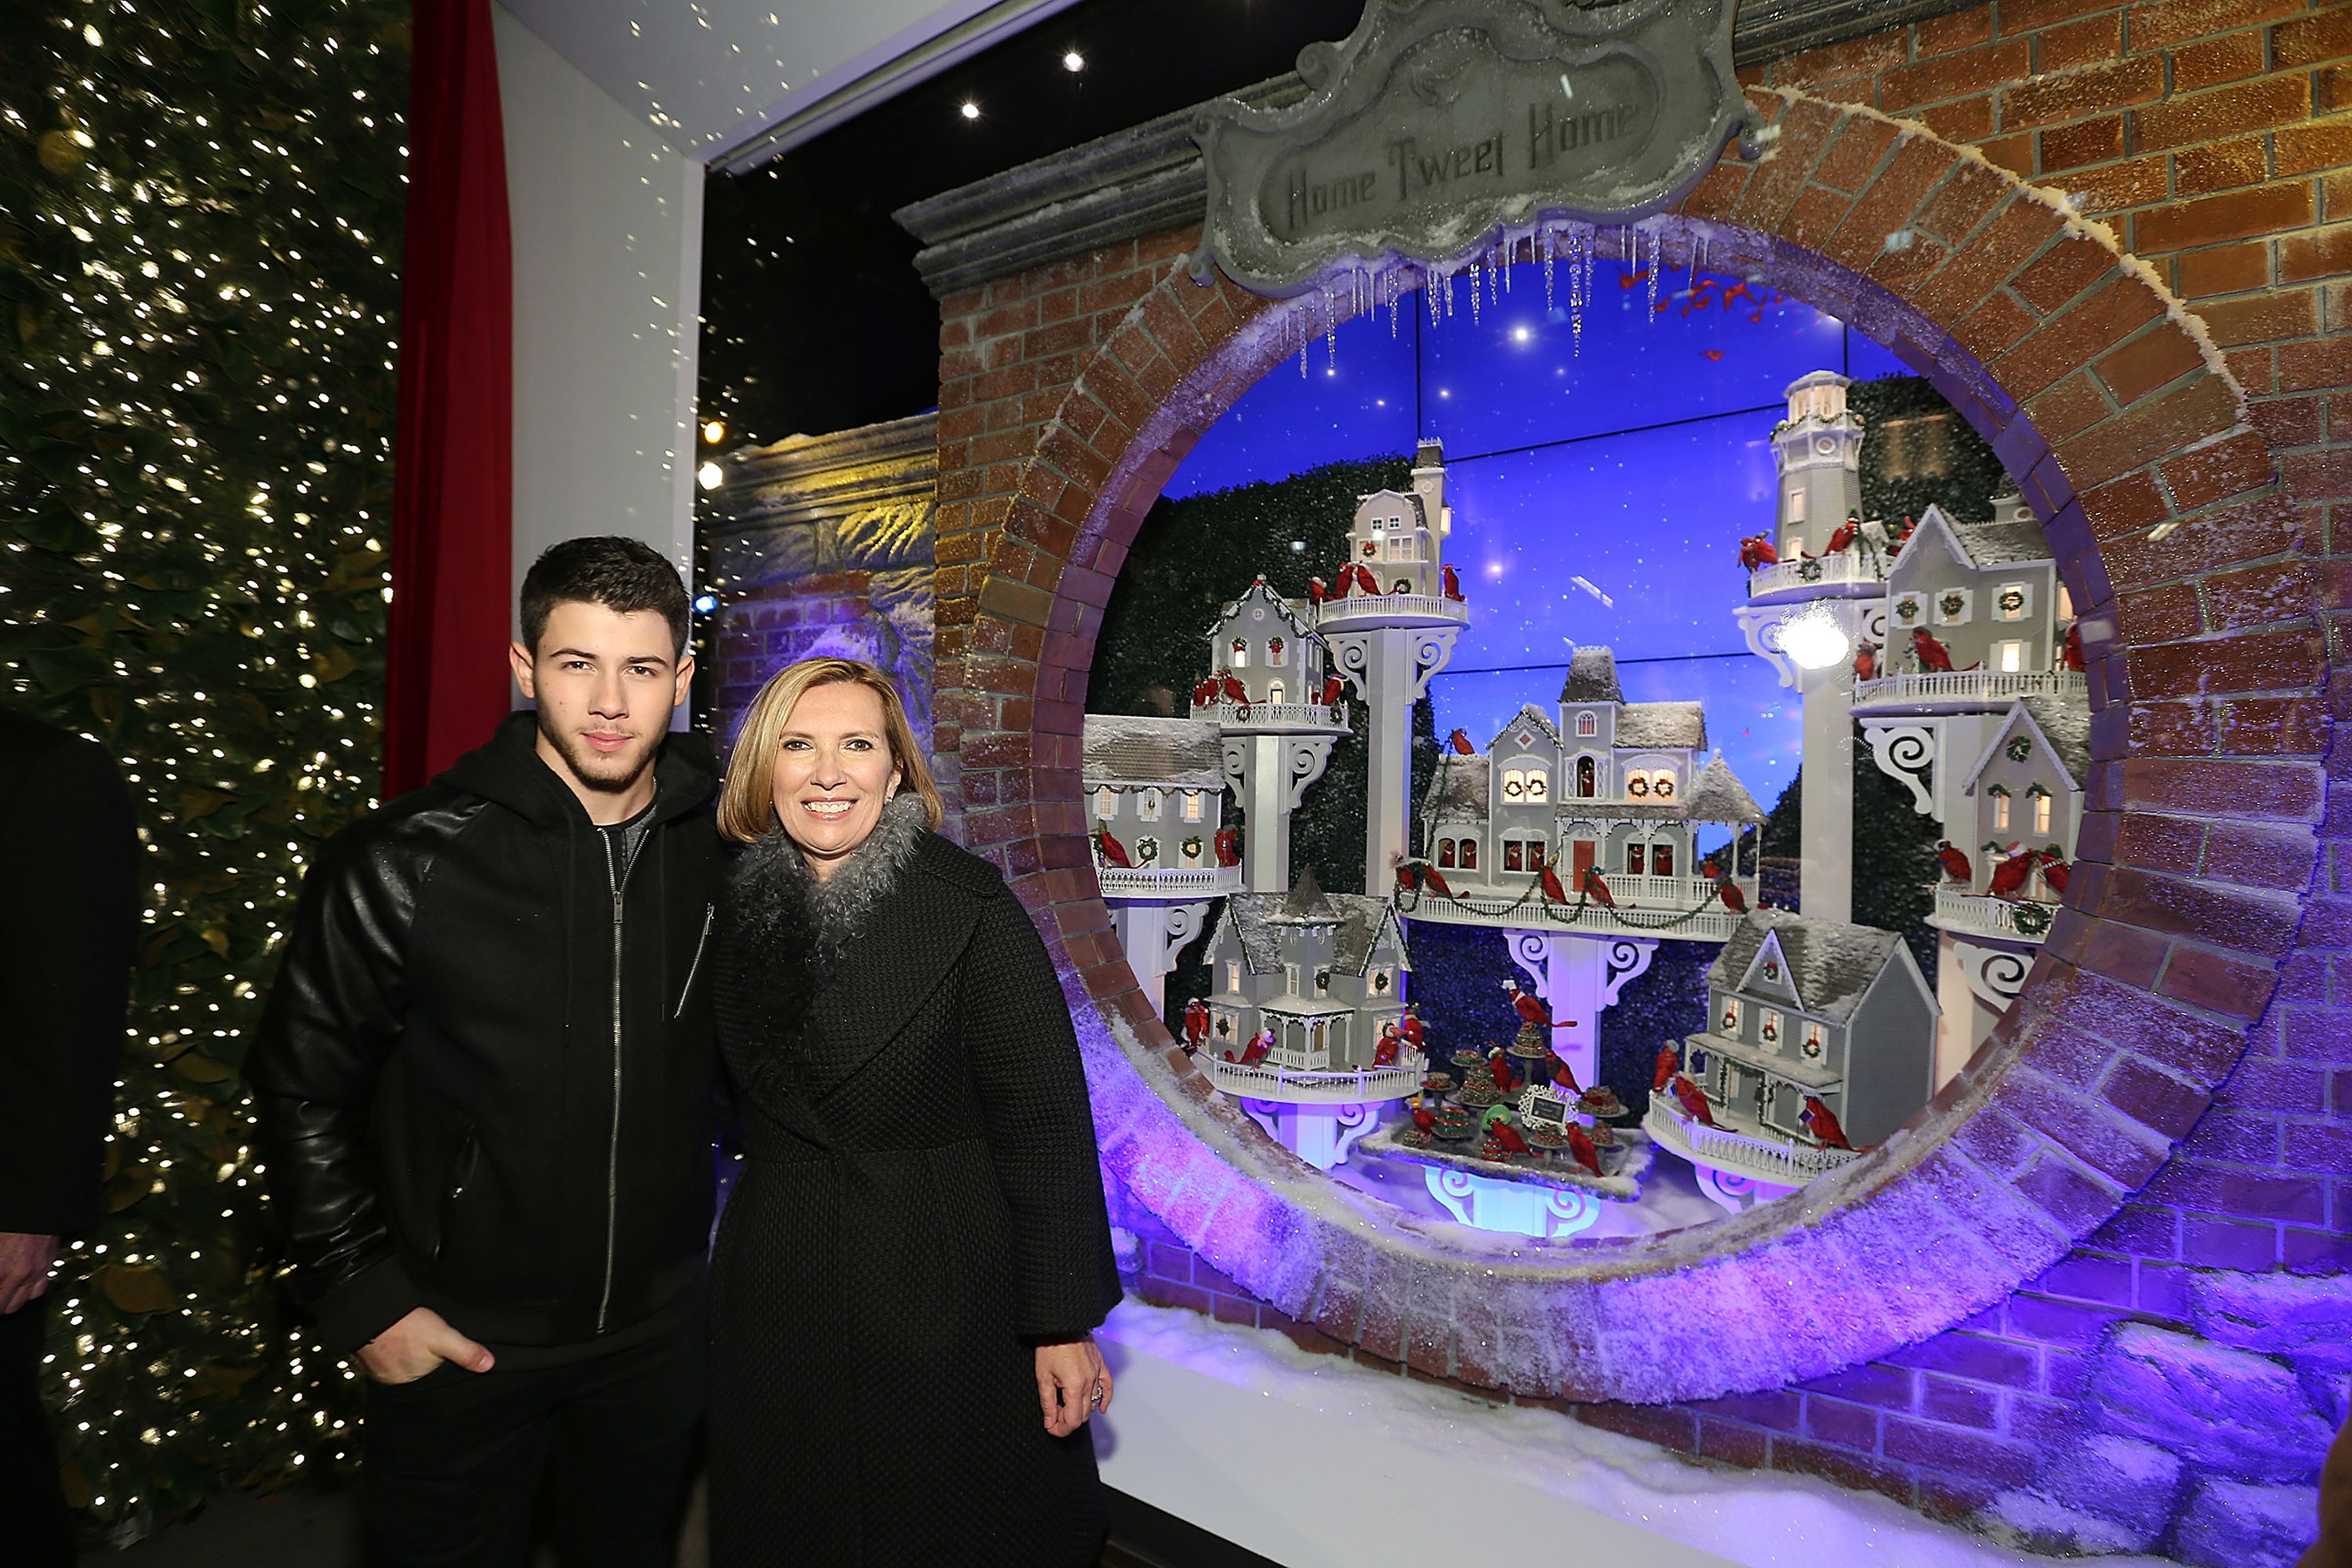 LORD & TAYLOR UNVEILED ITS 2014 ANNUAL HOLIDAY WINDOWS WITH NICK JONAS